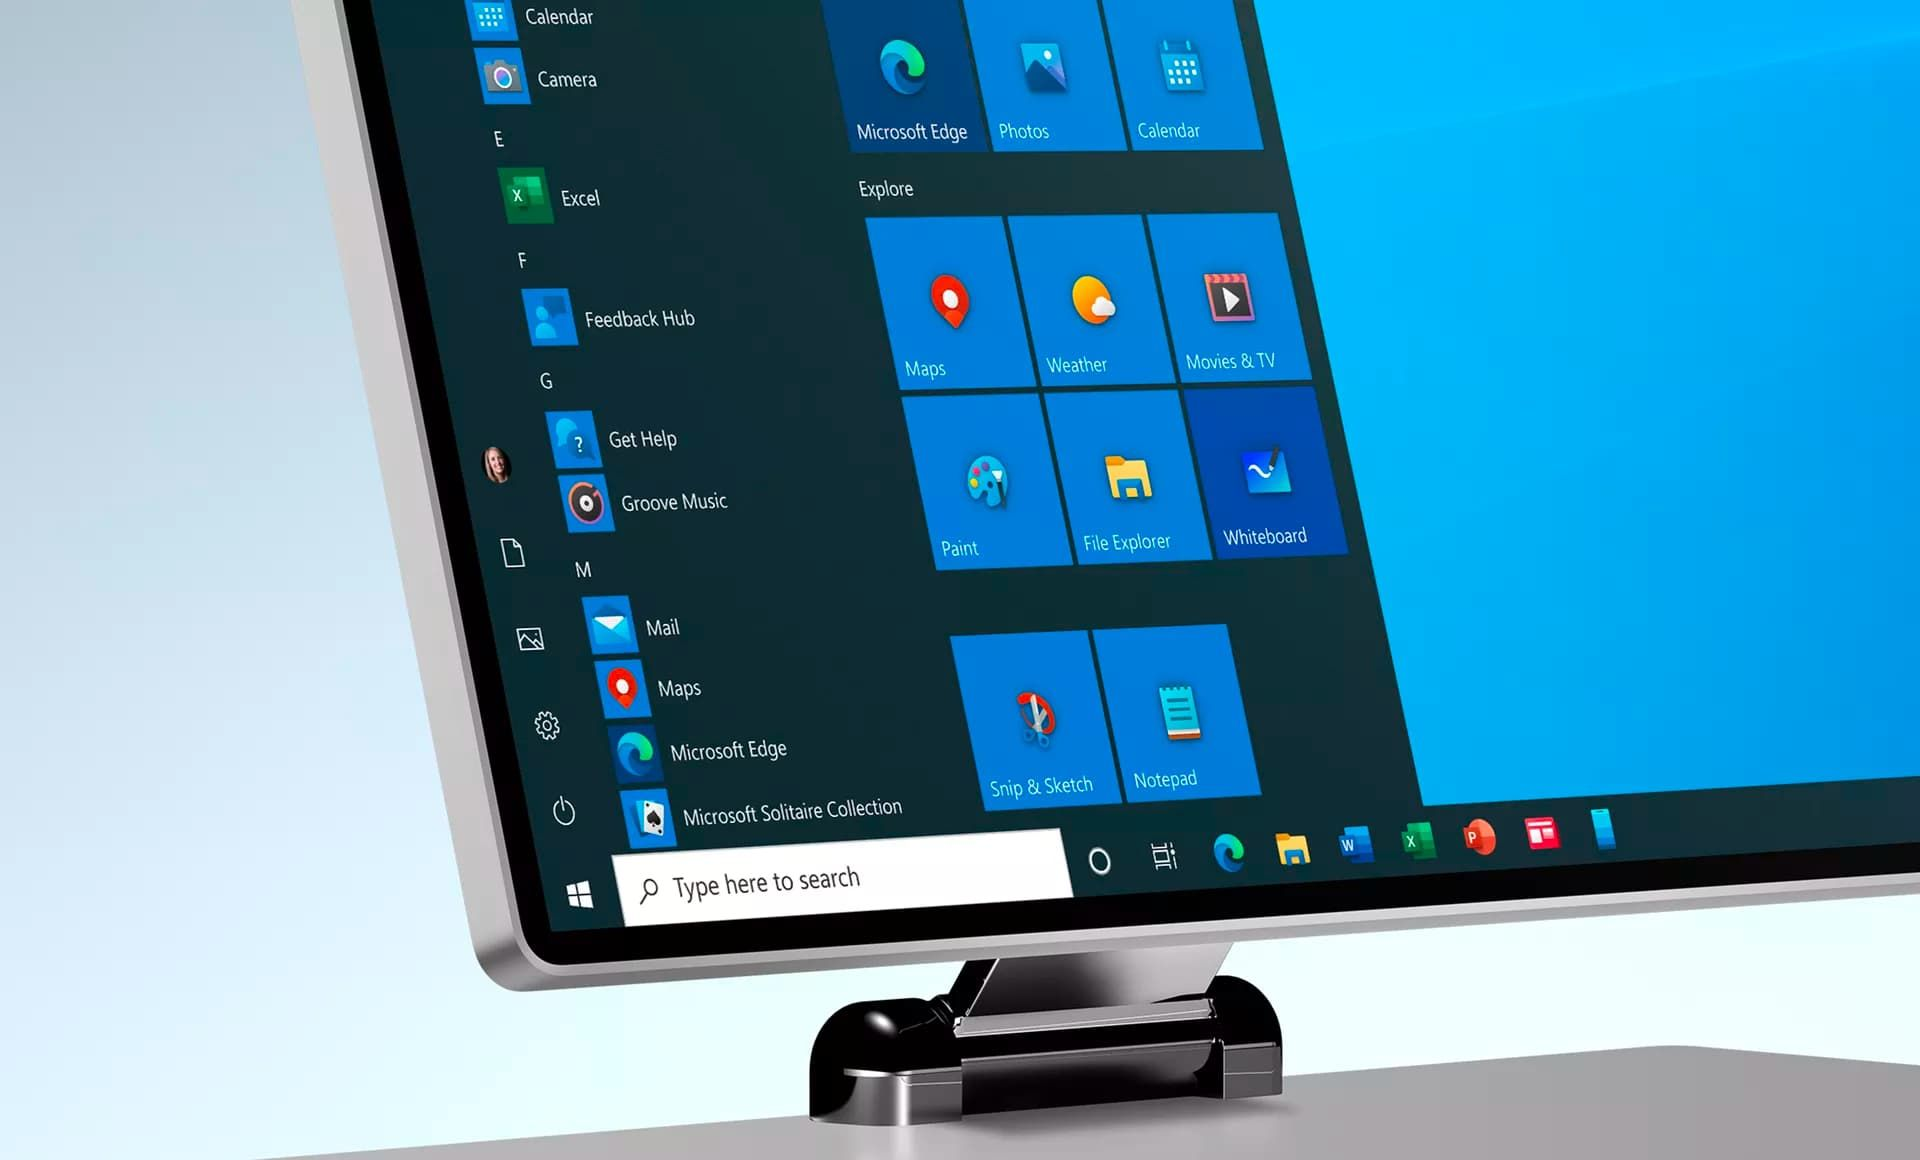 Microsoft releases new icons for Windows 10